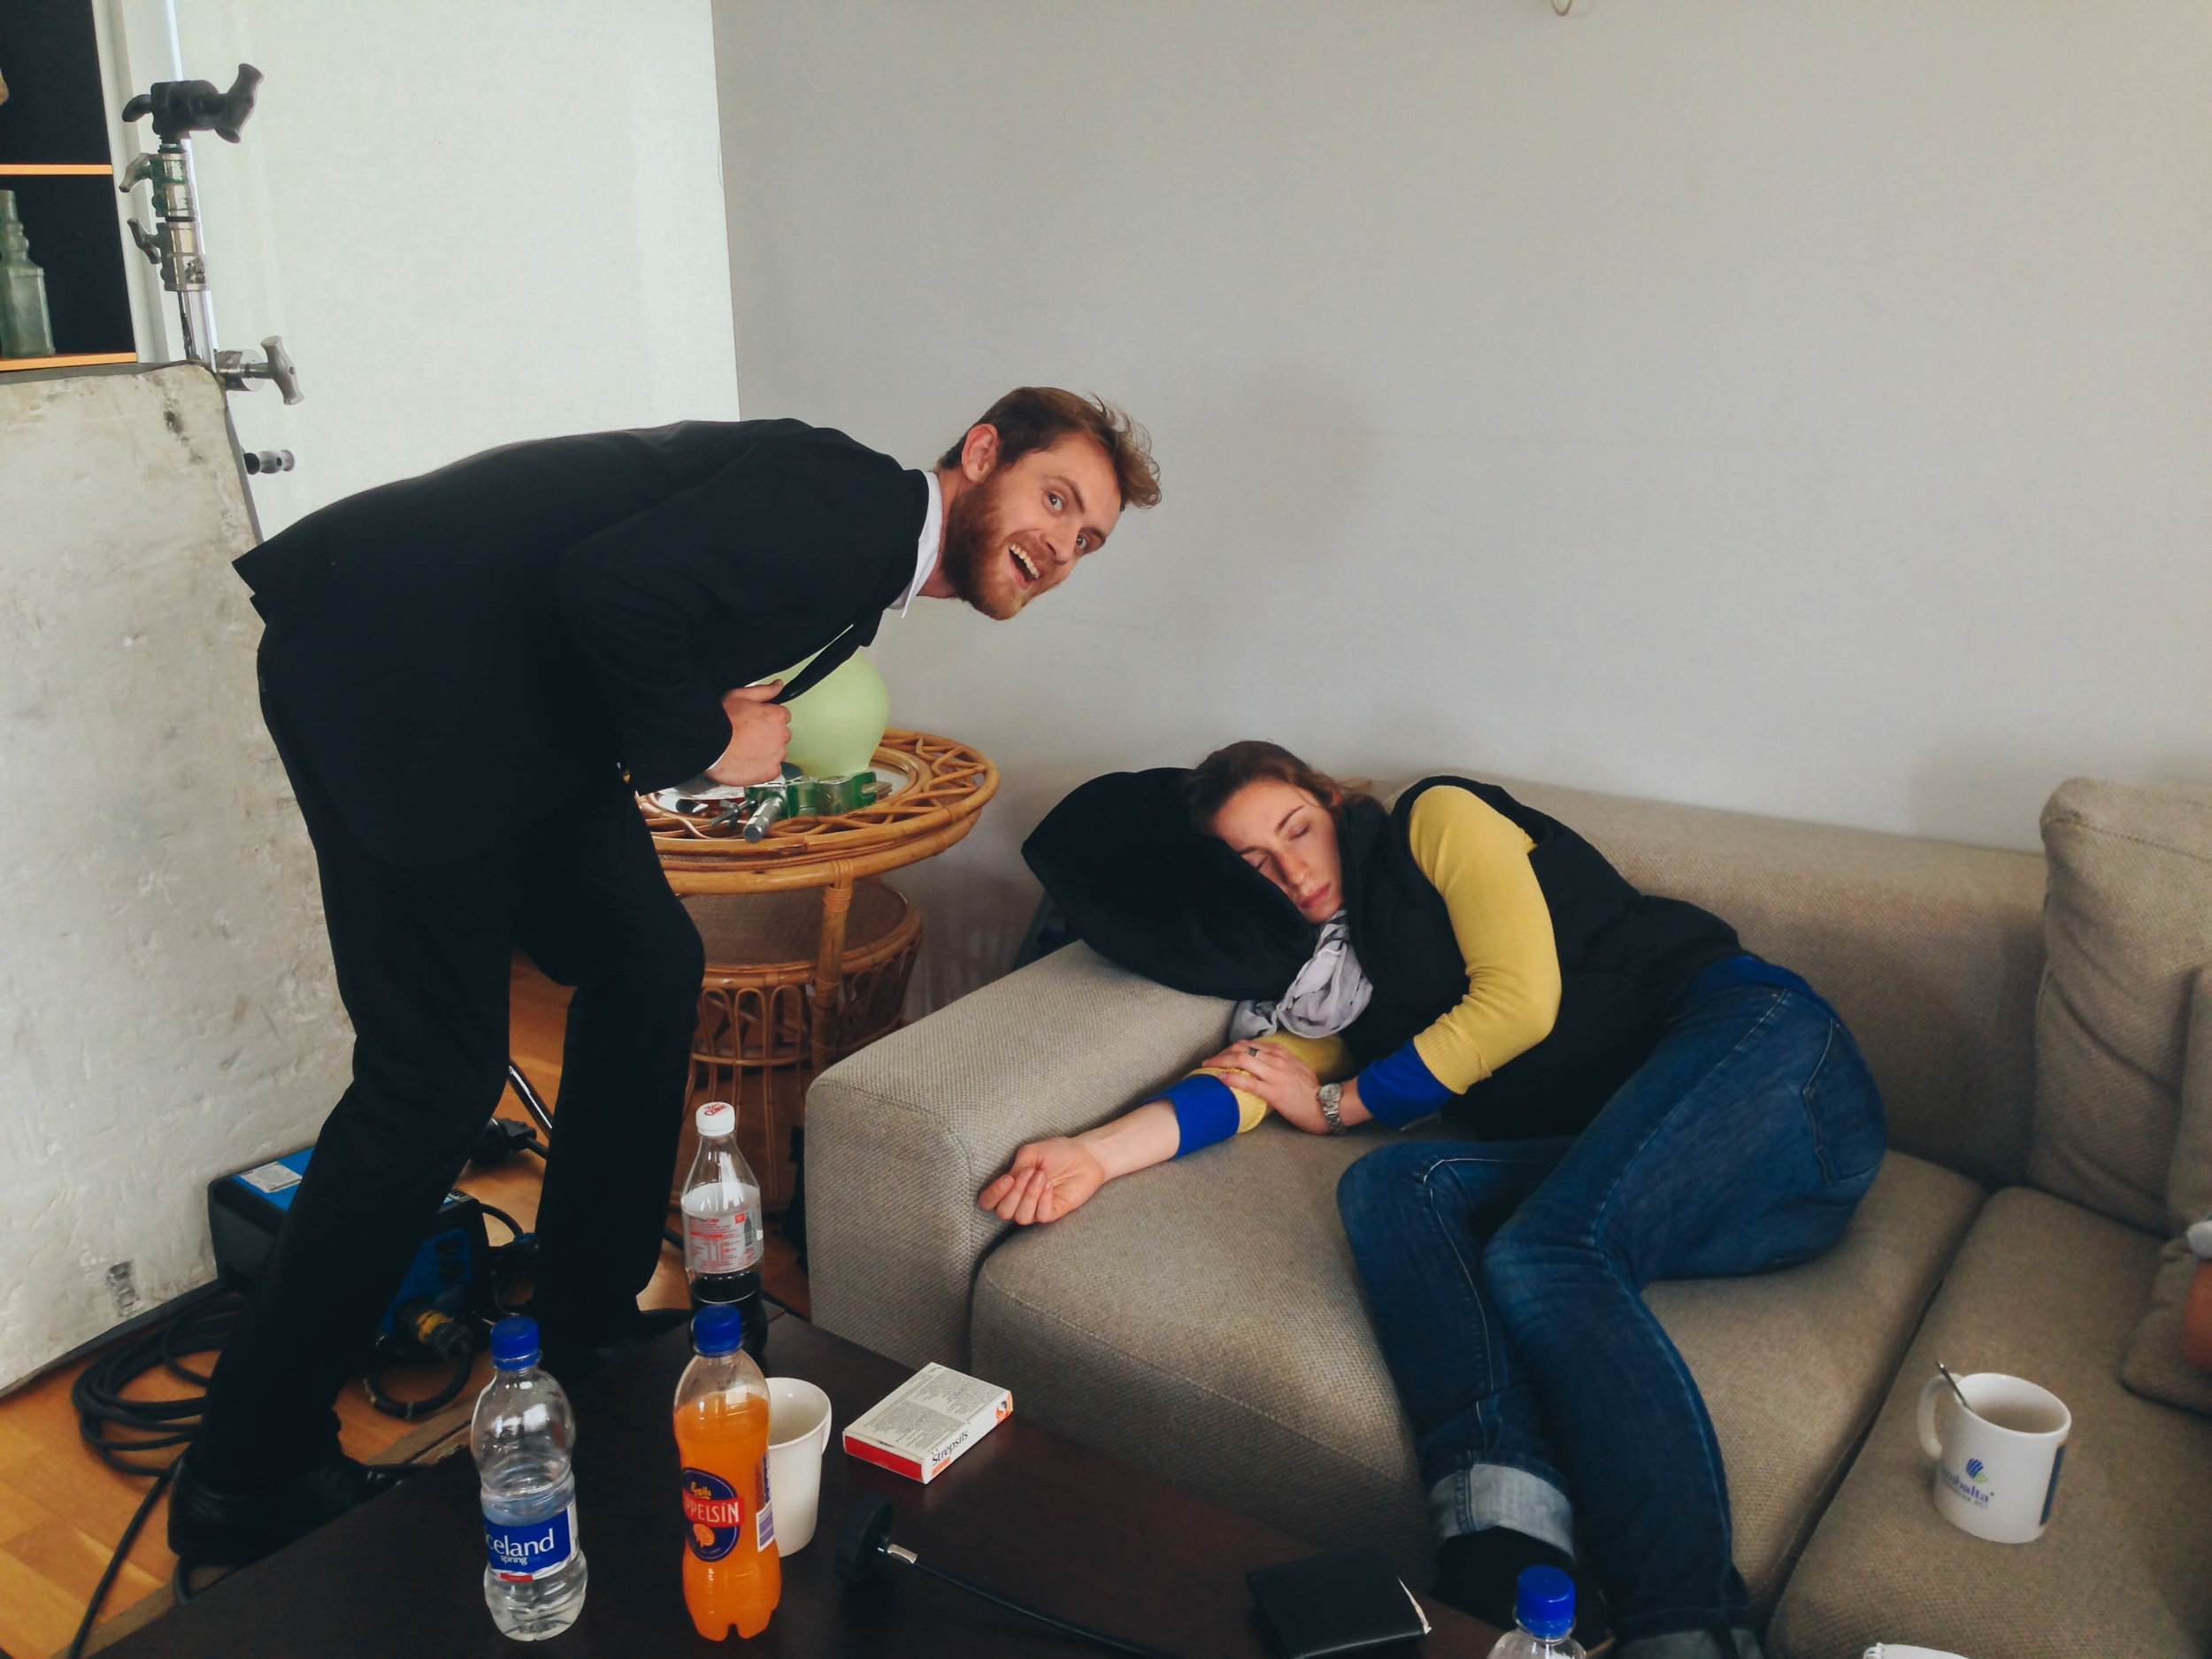 brie was a superwoman on this trip and slept on average 3 hours a night, however matt couldn't resist this opportunity